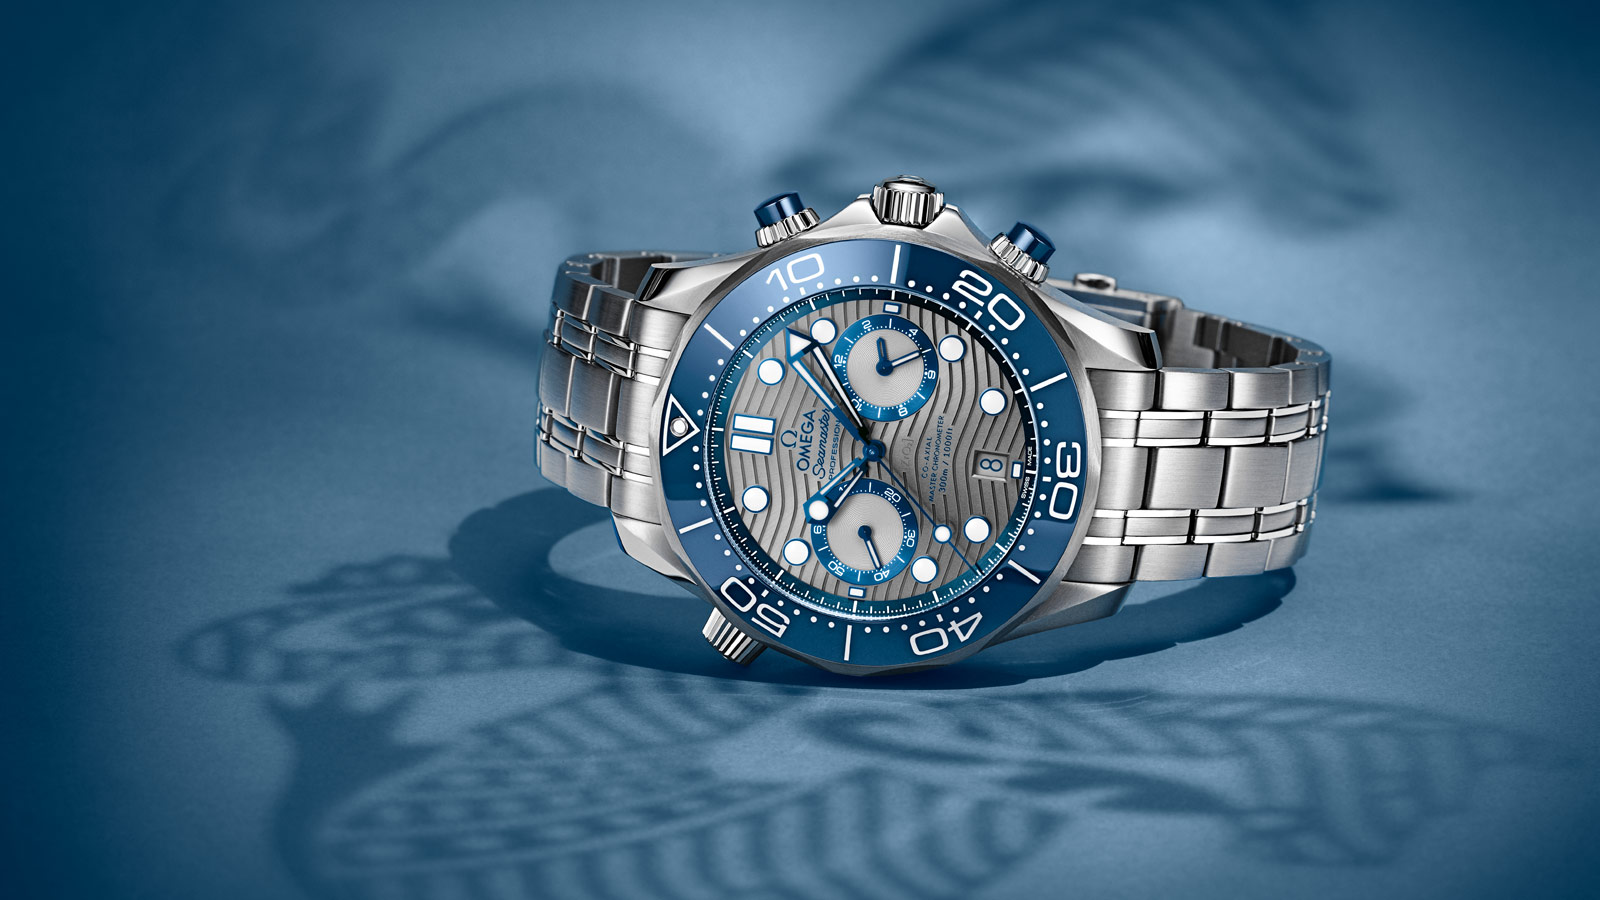 Seamaster Diver 300 M Diver 300M Omega Co‑Axial Master Chronometer Chronograph 44 mm Watch - 210.30.44.51.06.001